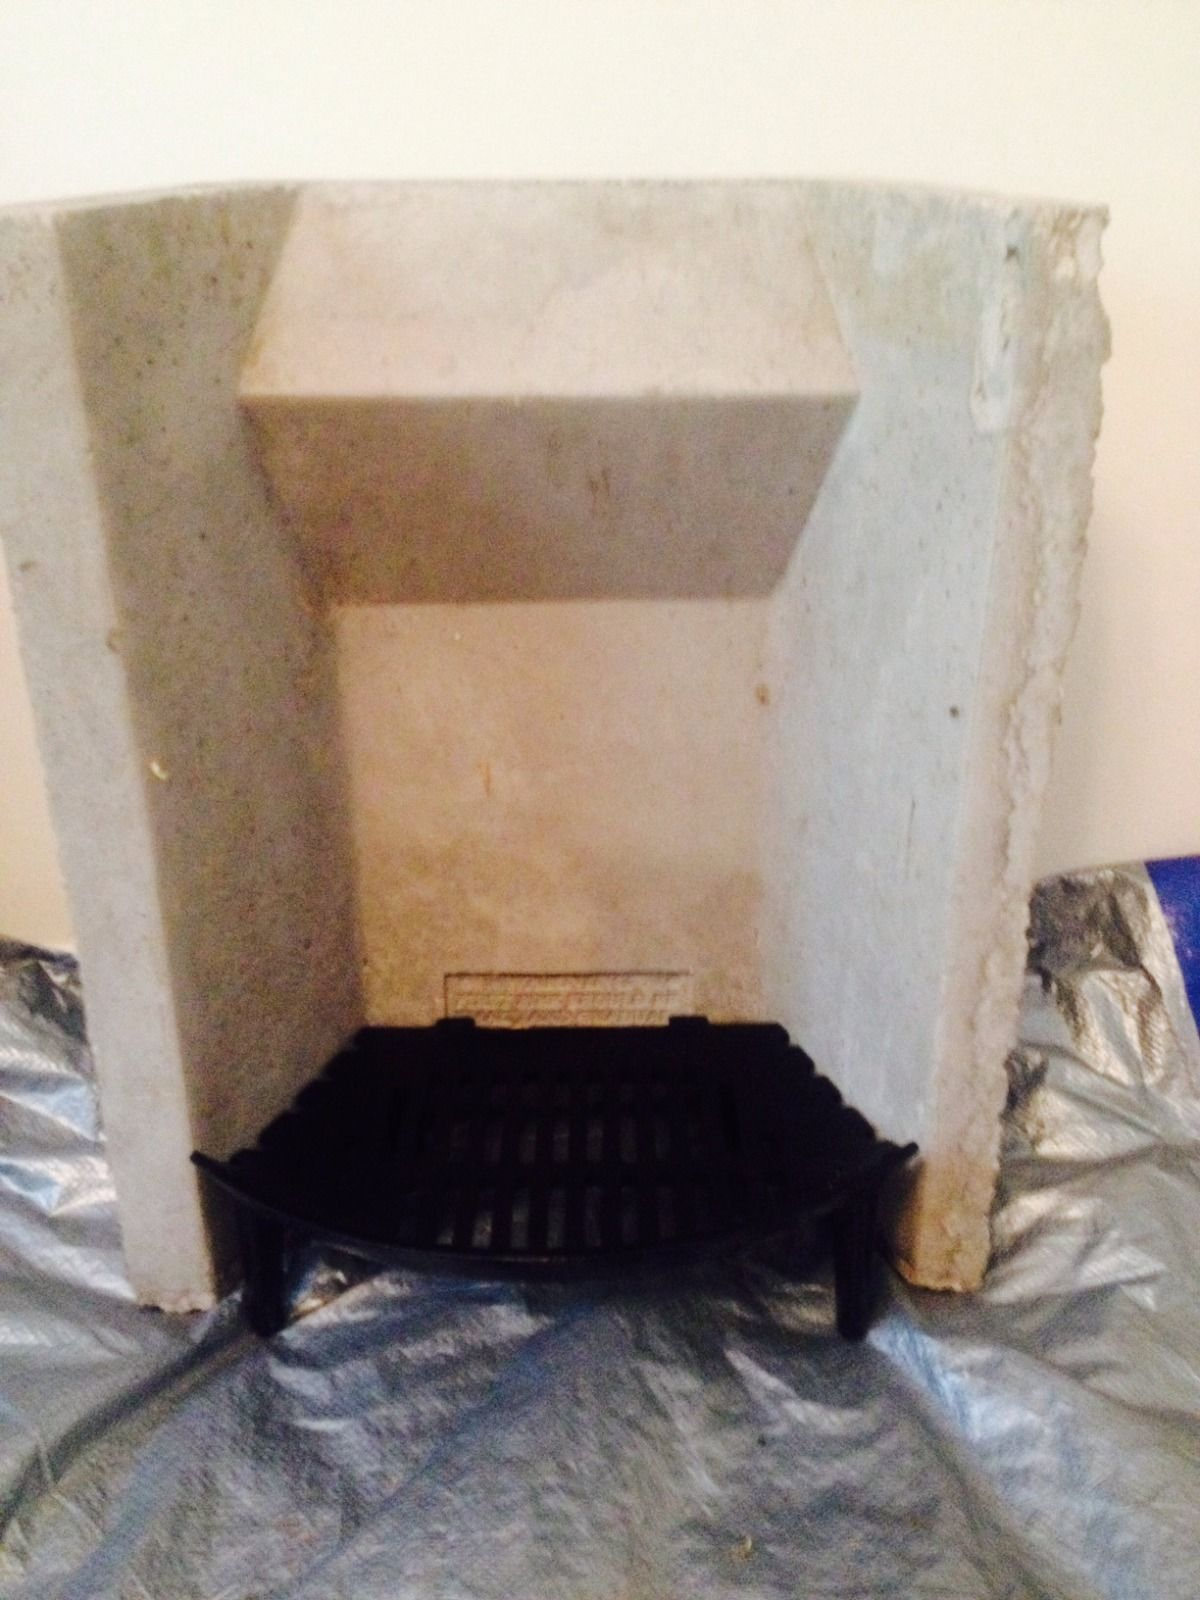 Original Antique Victorian Fireplace For Sale Classified Ads